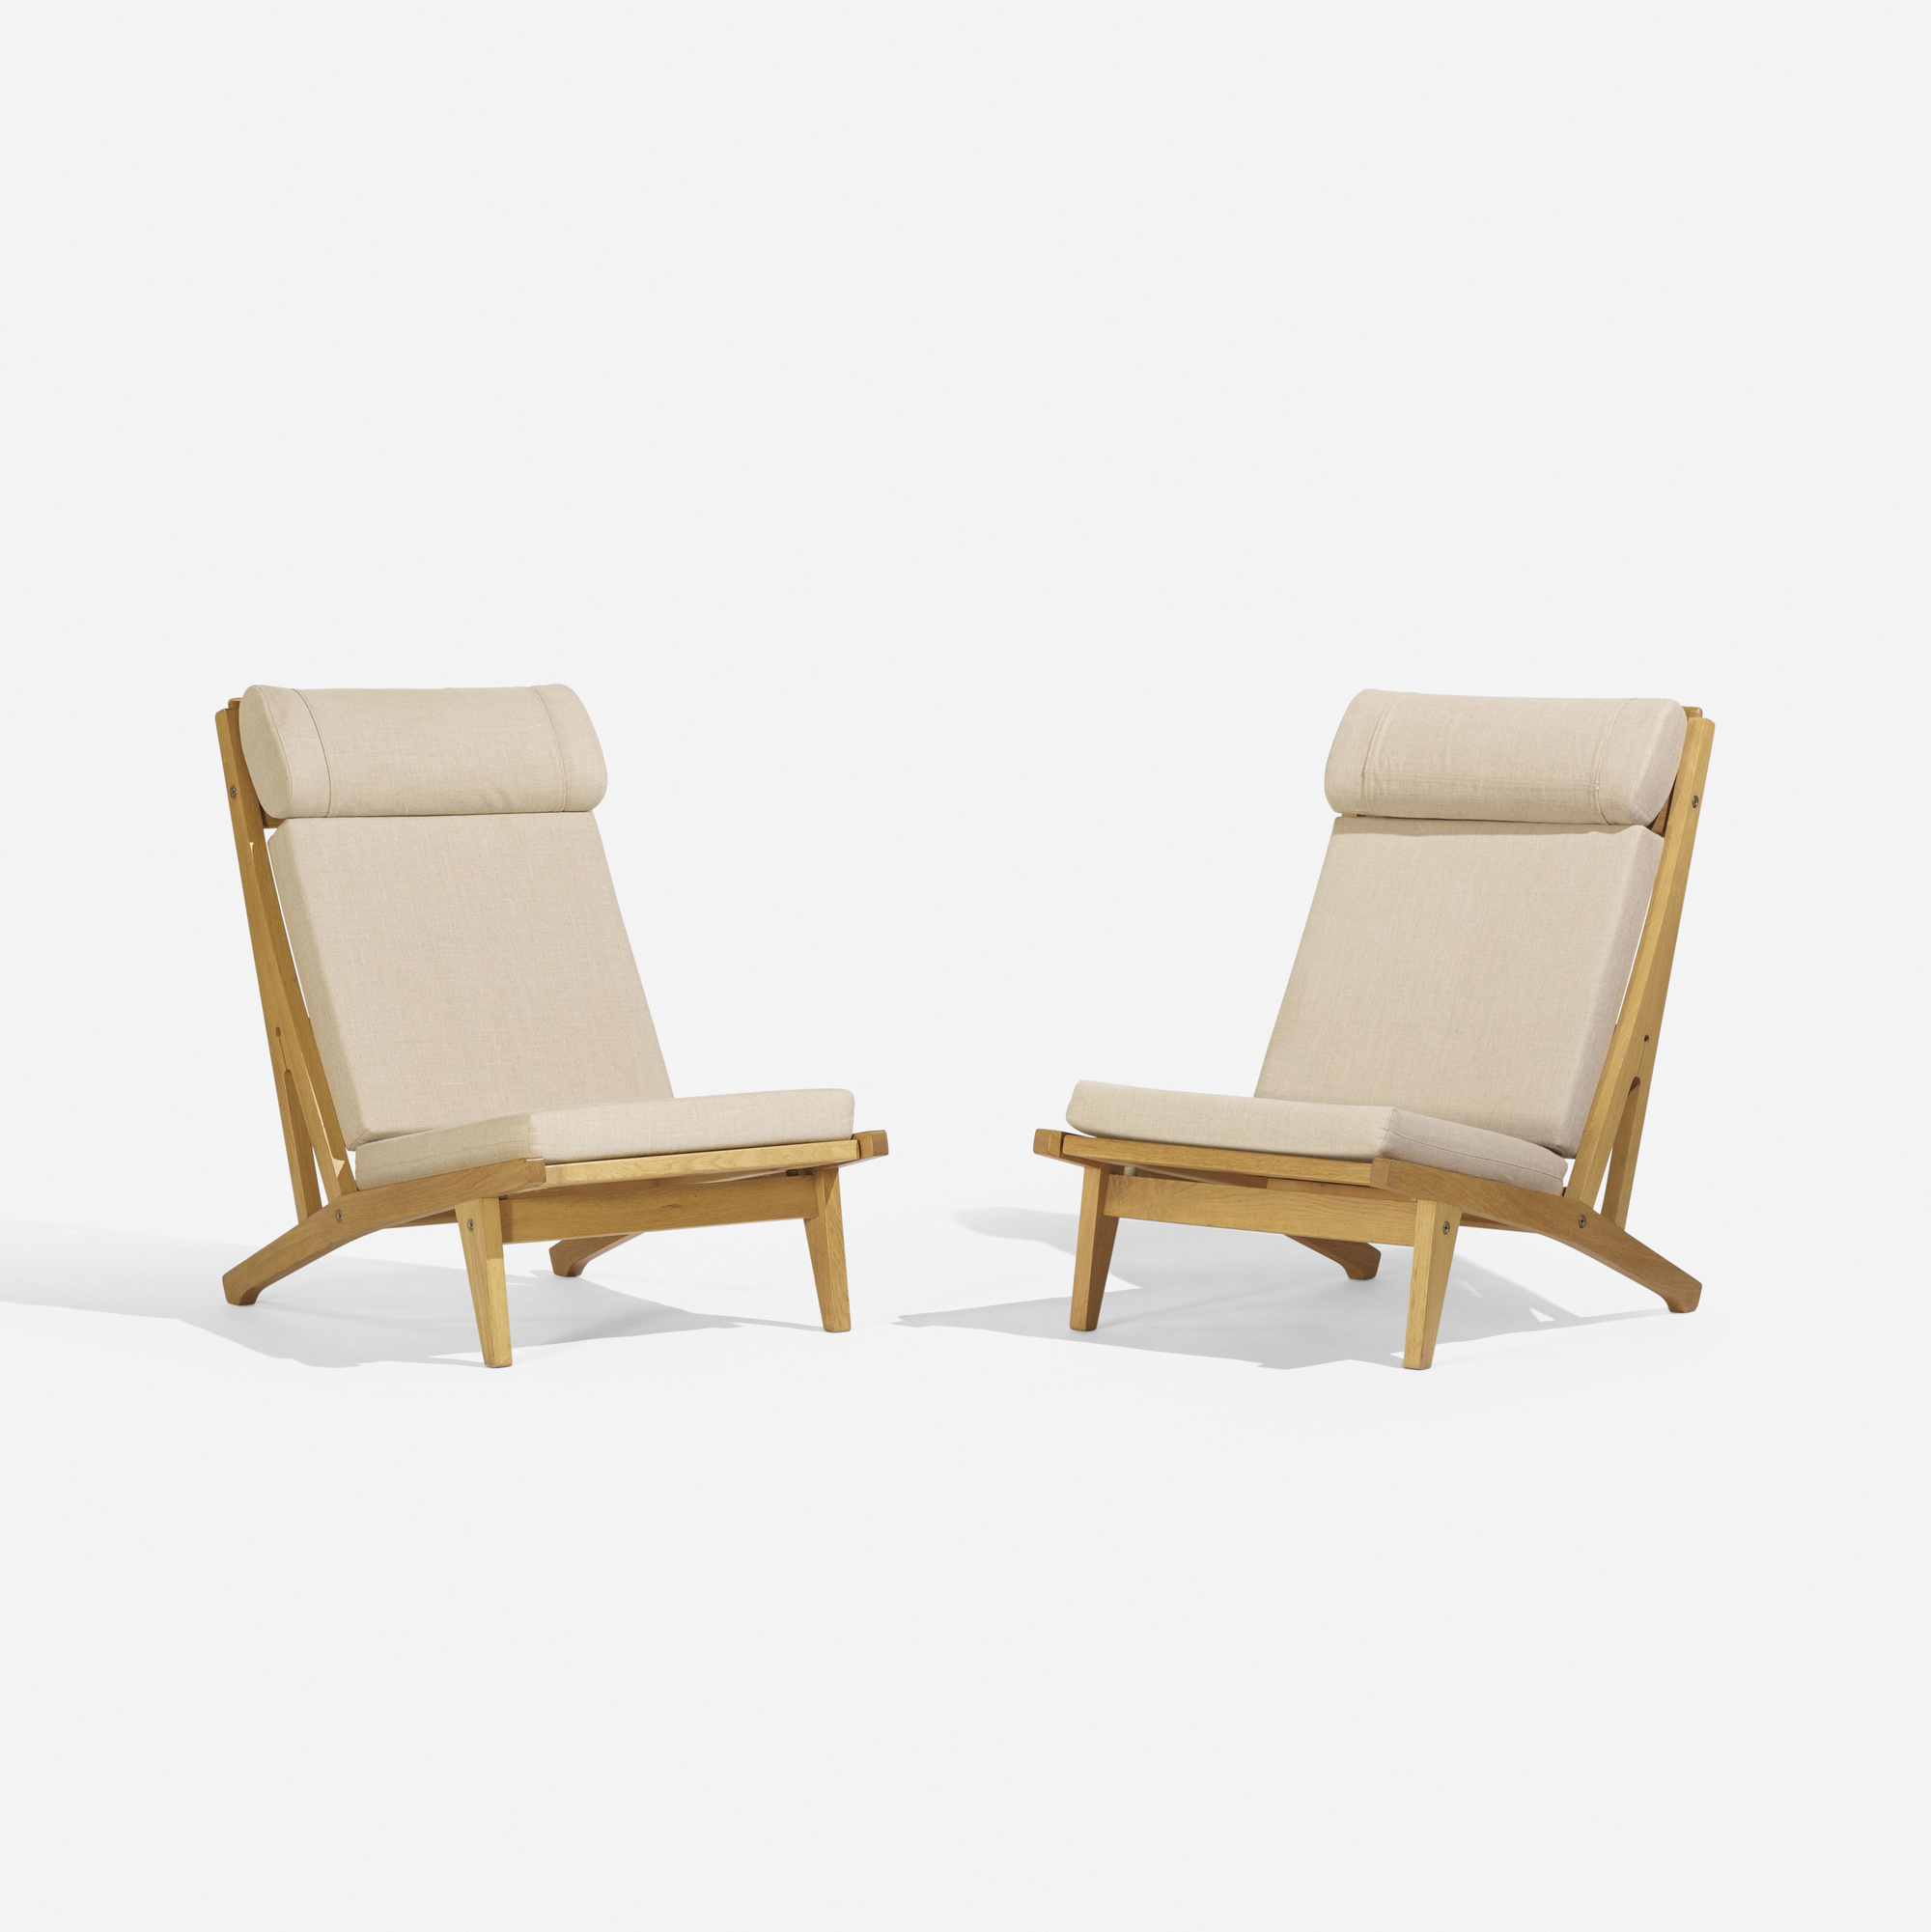 270: Hans J. Wegner / lounge chairs model GE375, pair (2 of 3)